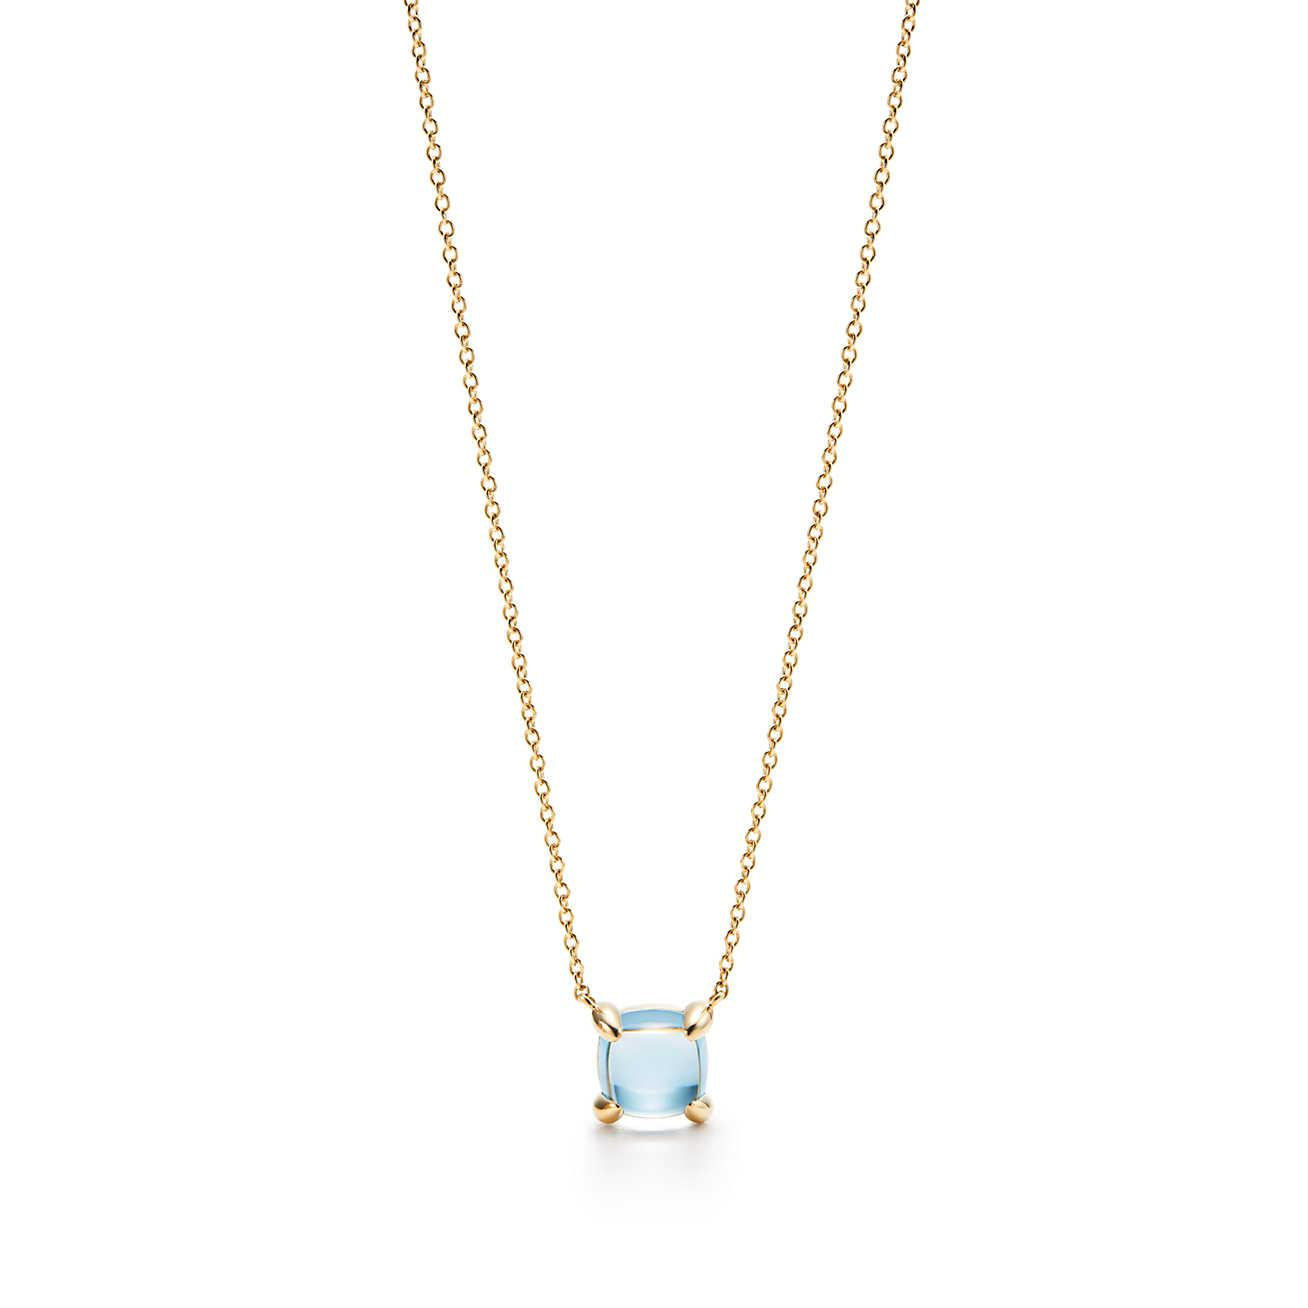 39504b5f1 Tiffany & Co. Paloma's Sugar Stacks Pendant In 18k Gold With A Blue ...